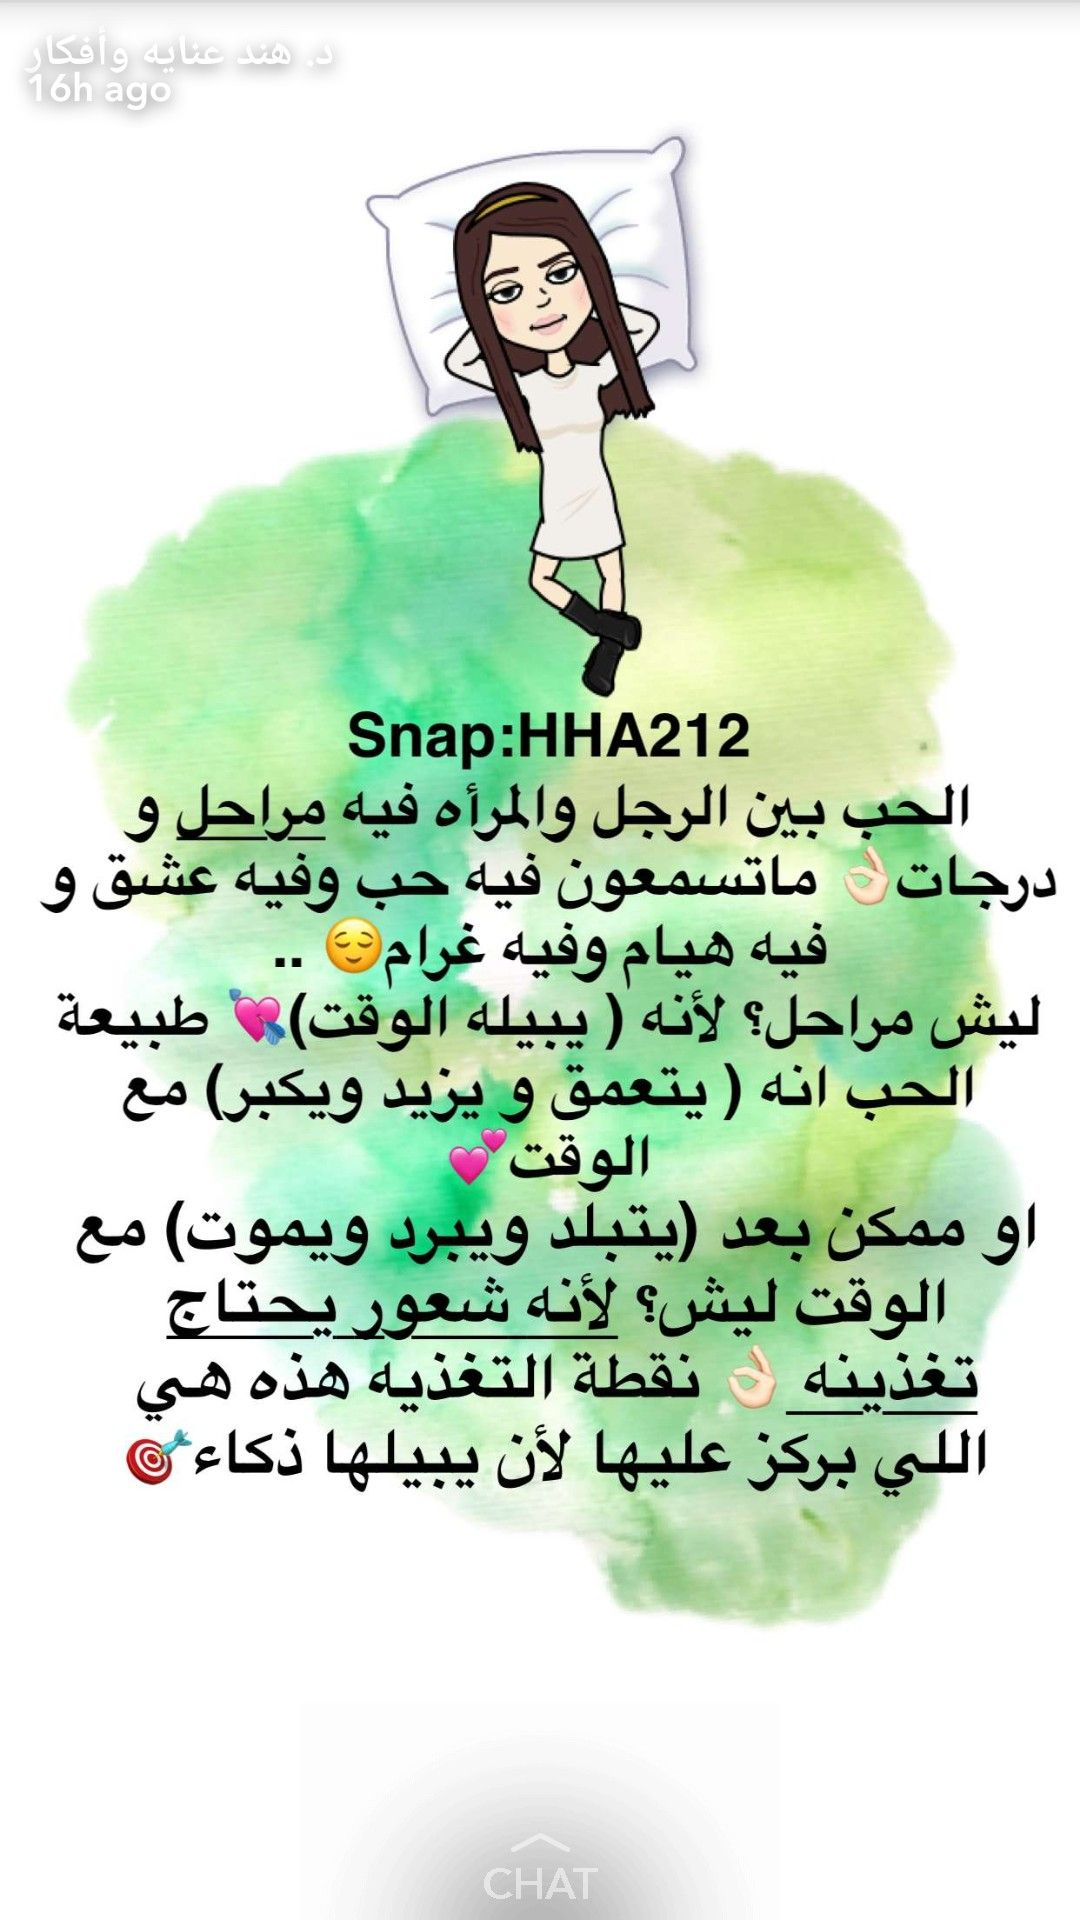 Pin By Amal Mohammed On سنابات د هند Life Coach Quotes Life Habits Queen Quotes